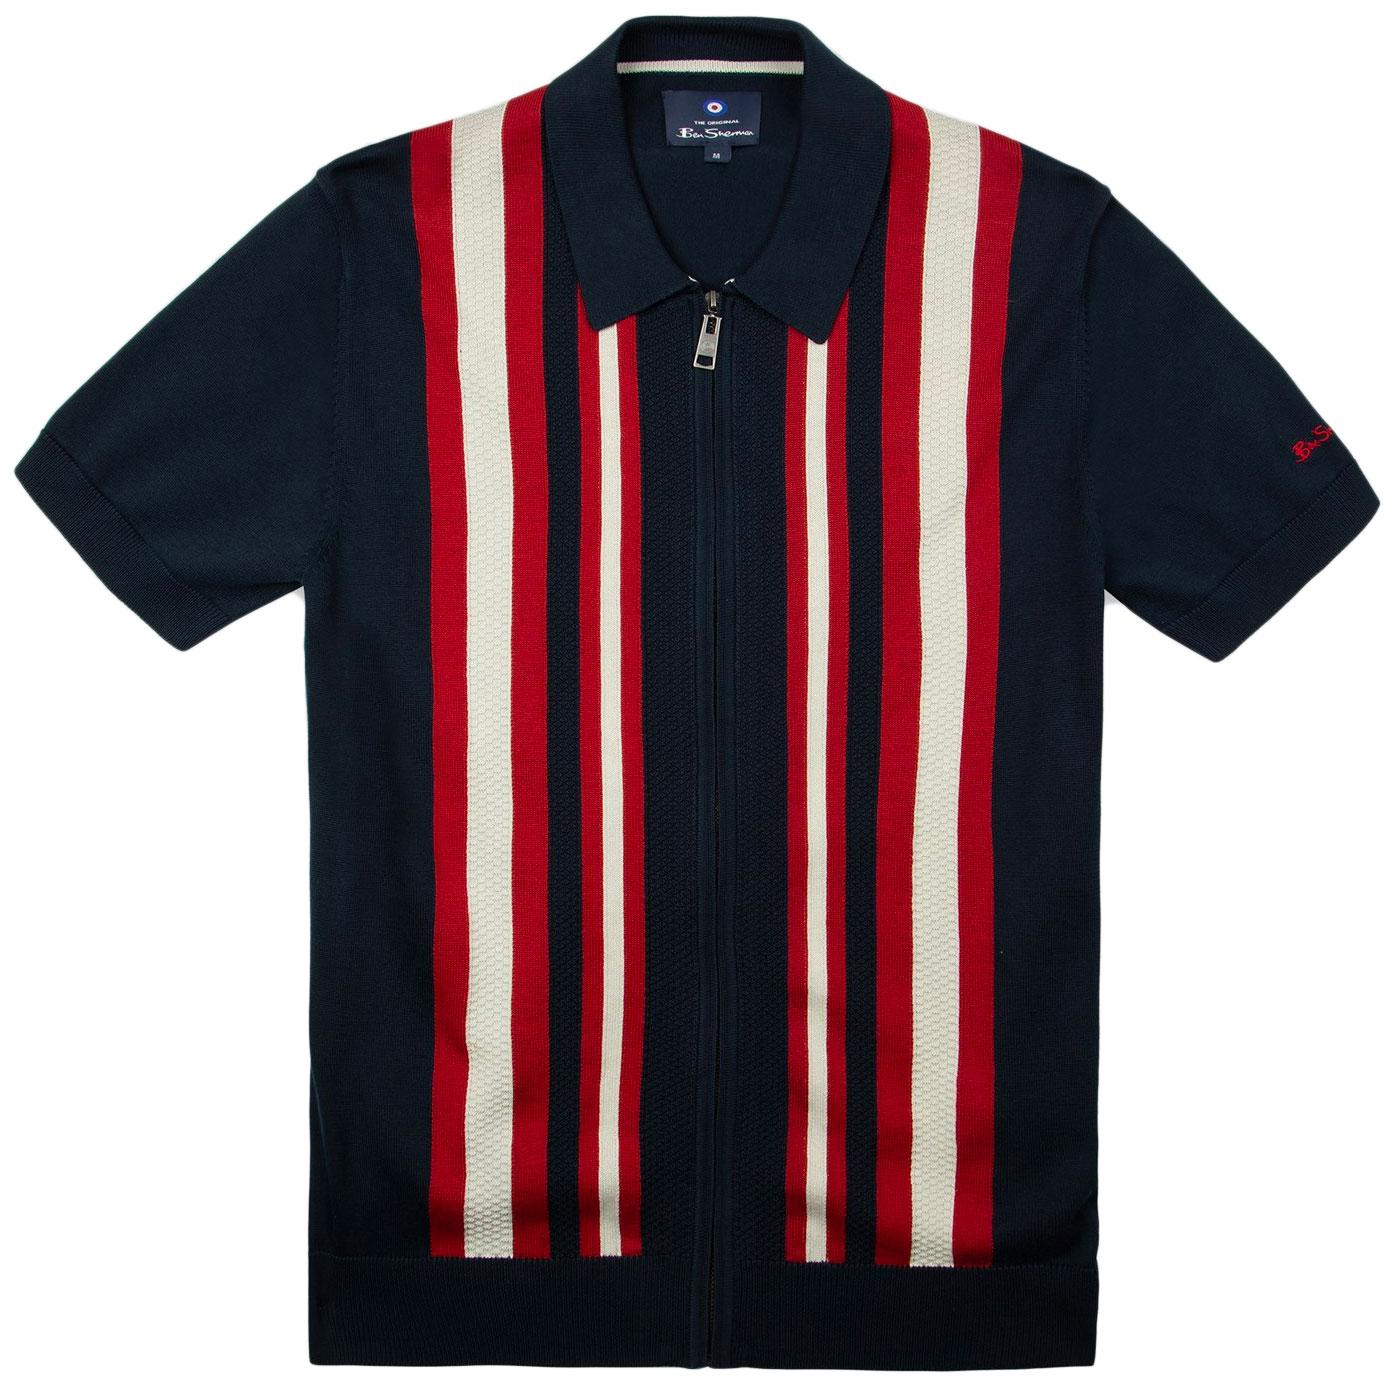 BEN SHERMAN Mod Textured Stripe Zip Thru Knit Polo